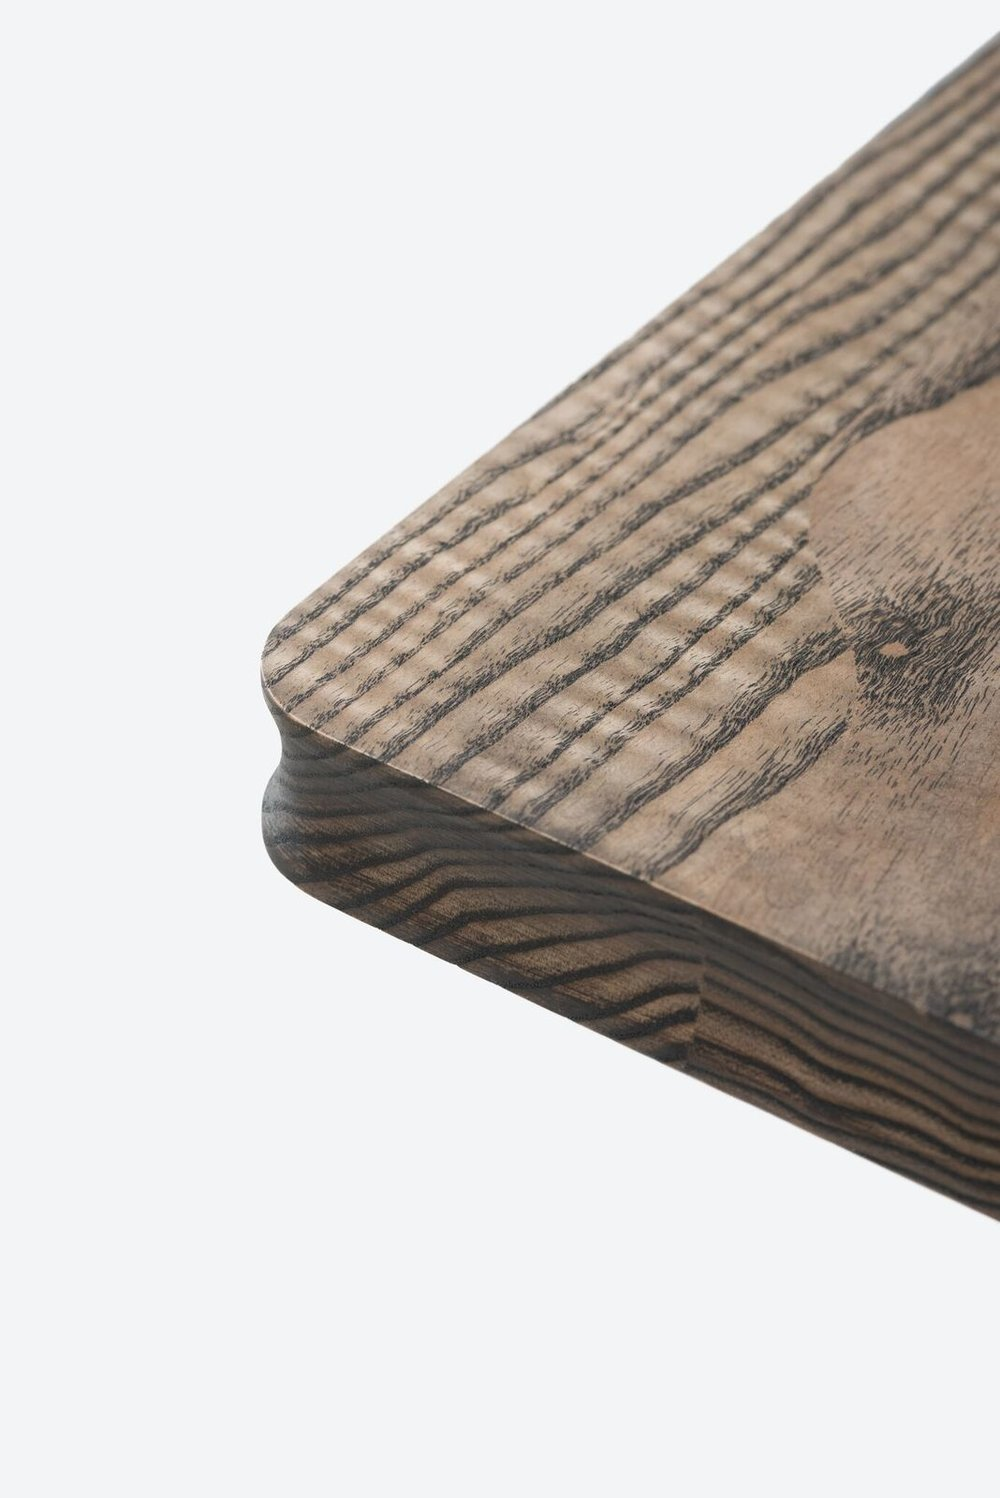 Tavli Table by Matthew Hilton - detail_preview.jpeg